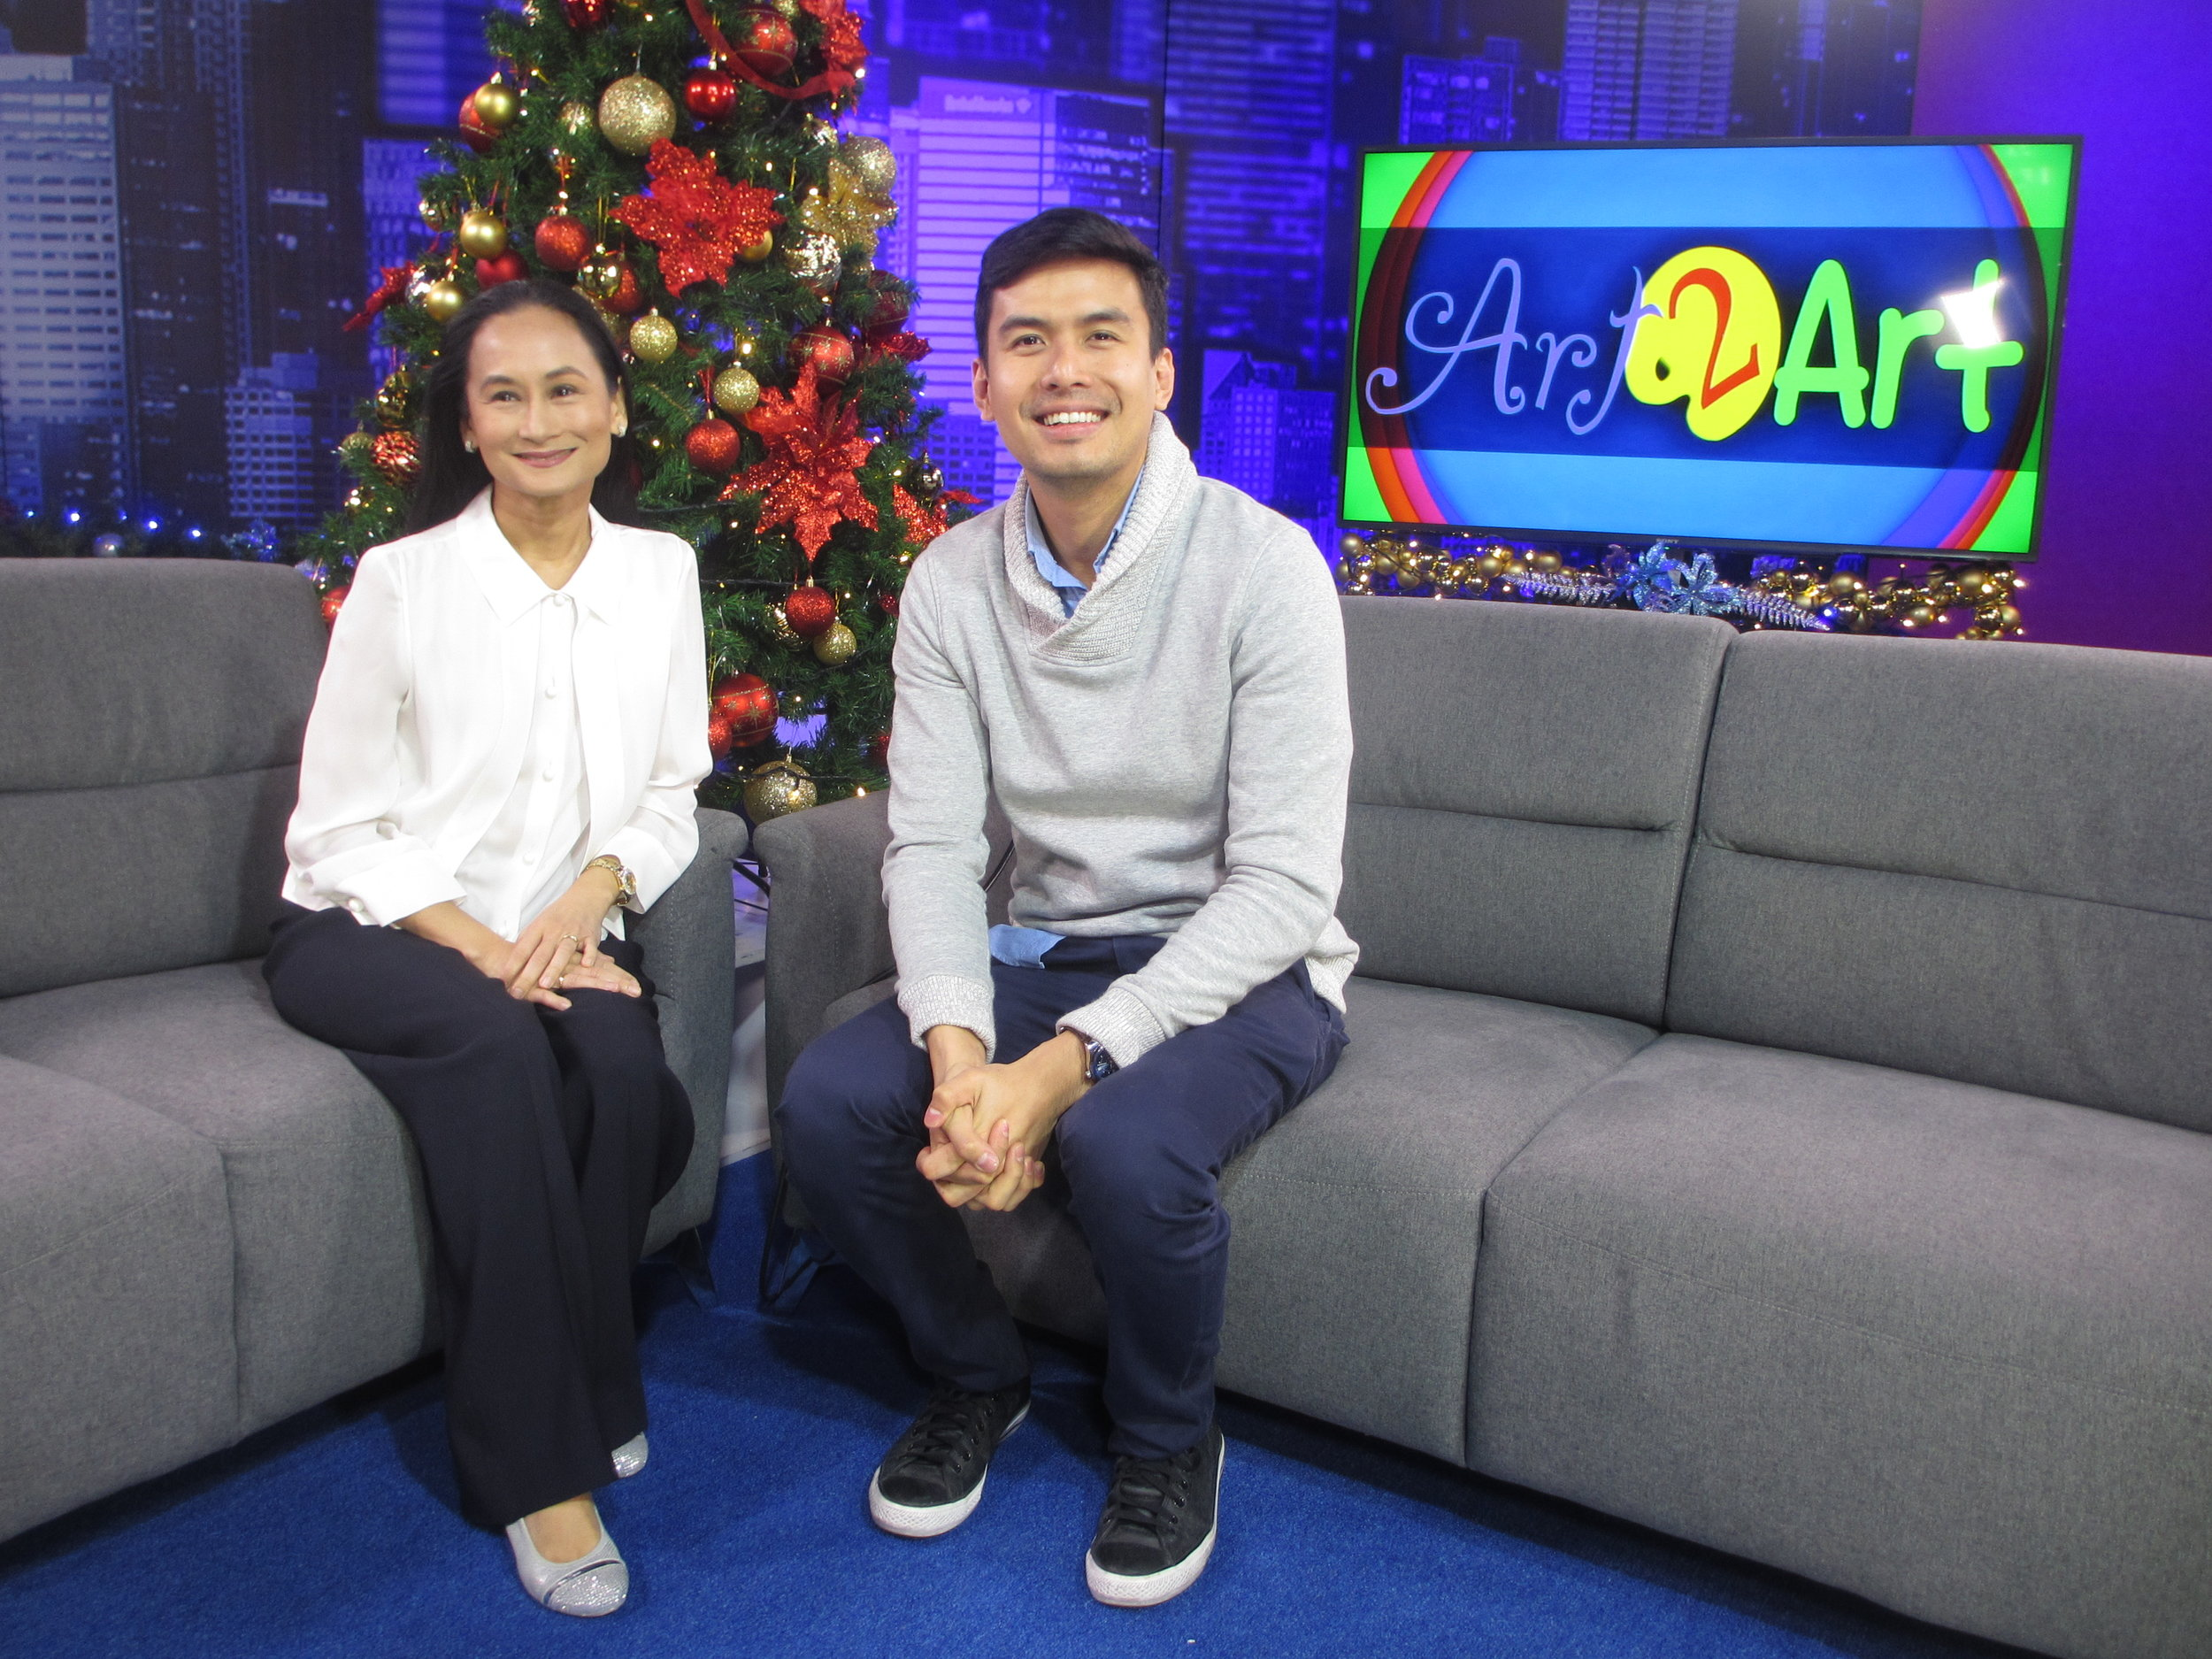 Christian Bautista recently shared his unexpected journey as a performing artist in Lisa Macuja-Elizalde's art advocacy program    Art 2 Art   . Photo by Susan A. De Guzman